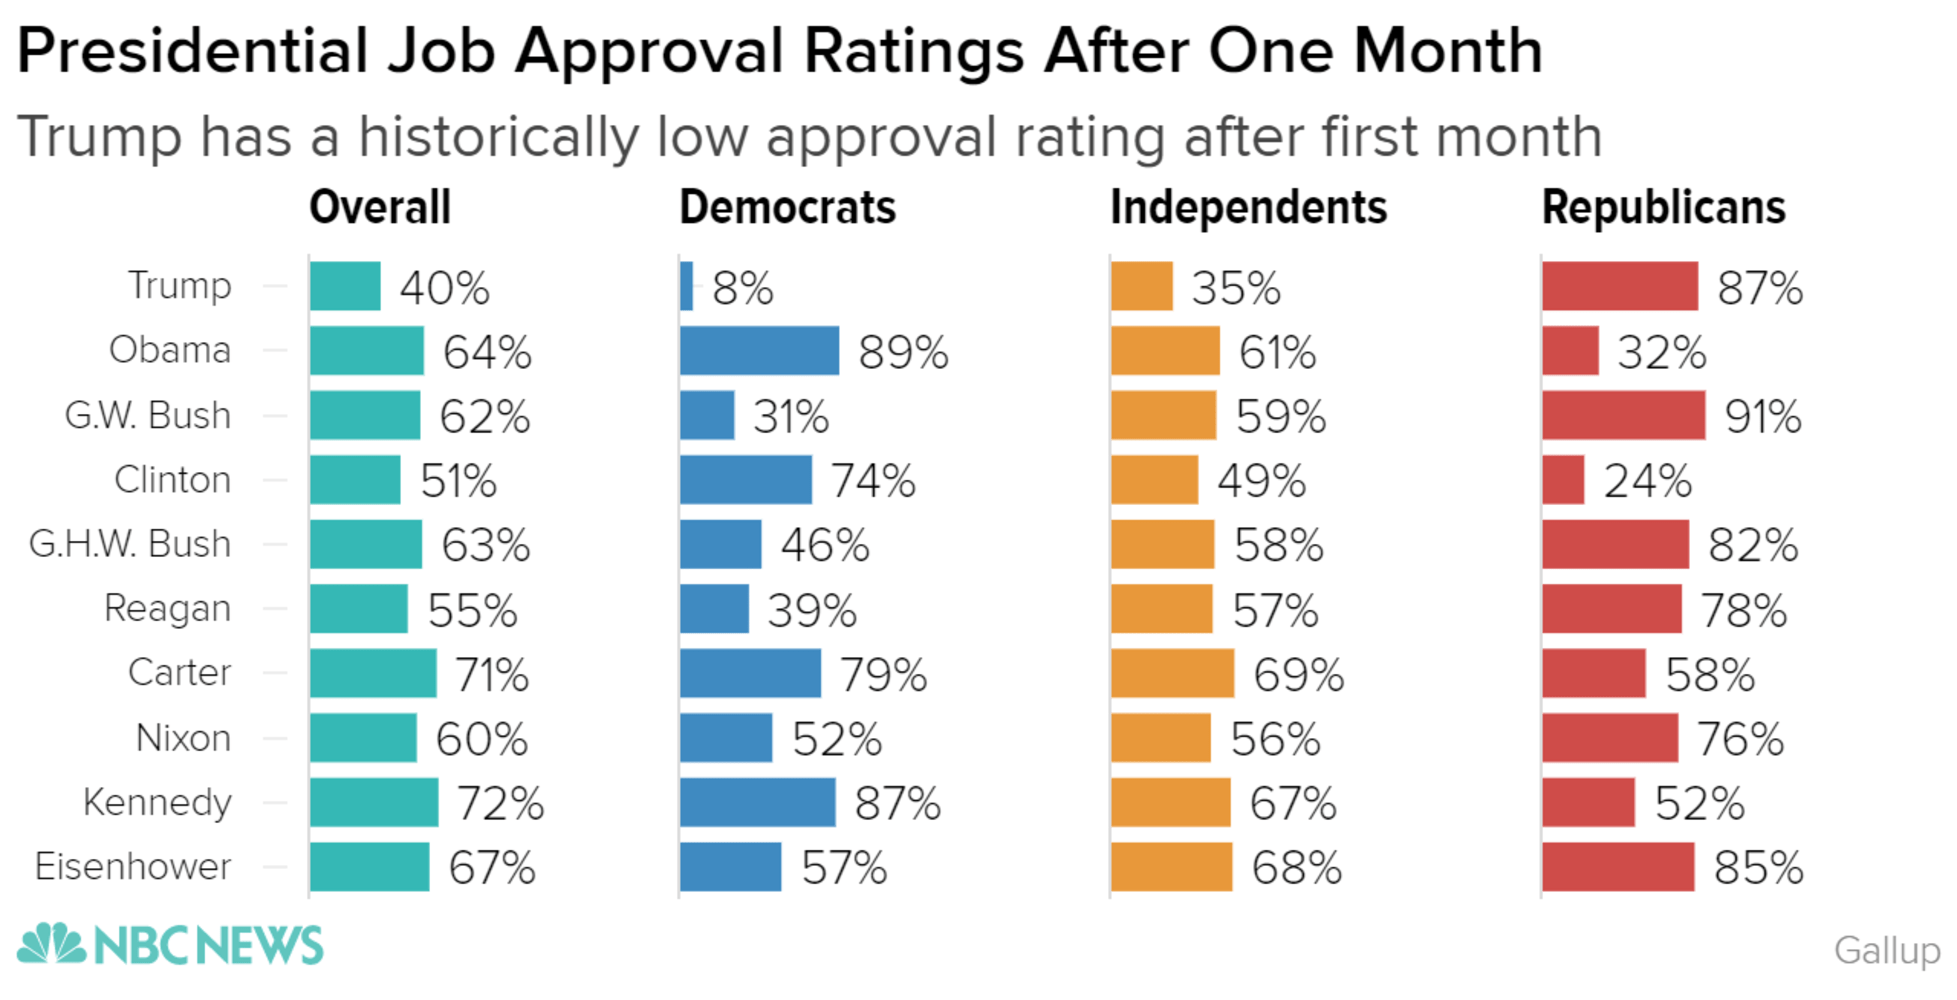 presidential_job_approval_ratings_after_one_month_overall_democrats_independents_republicans_chartbuilder_1_3ea35ccd82f13721697e43964d3d46d9.nbcnews-ux-2880-1000.png